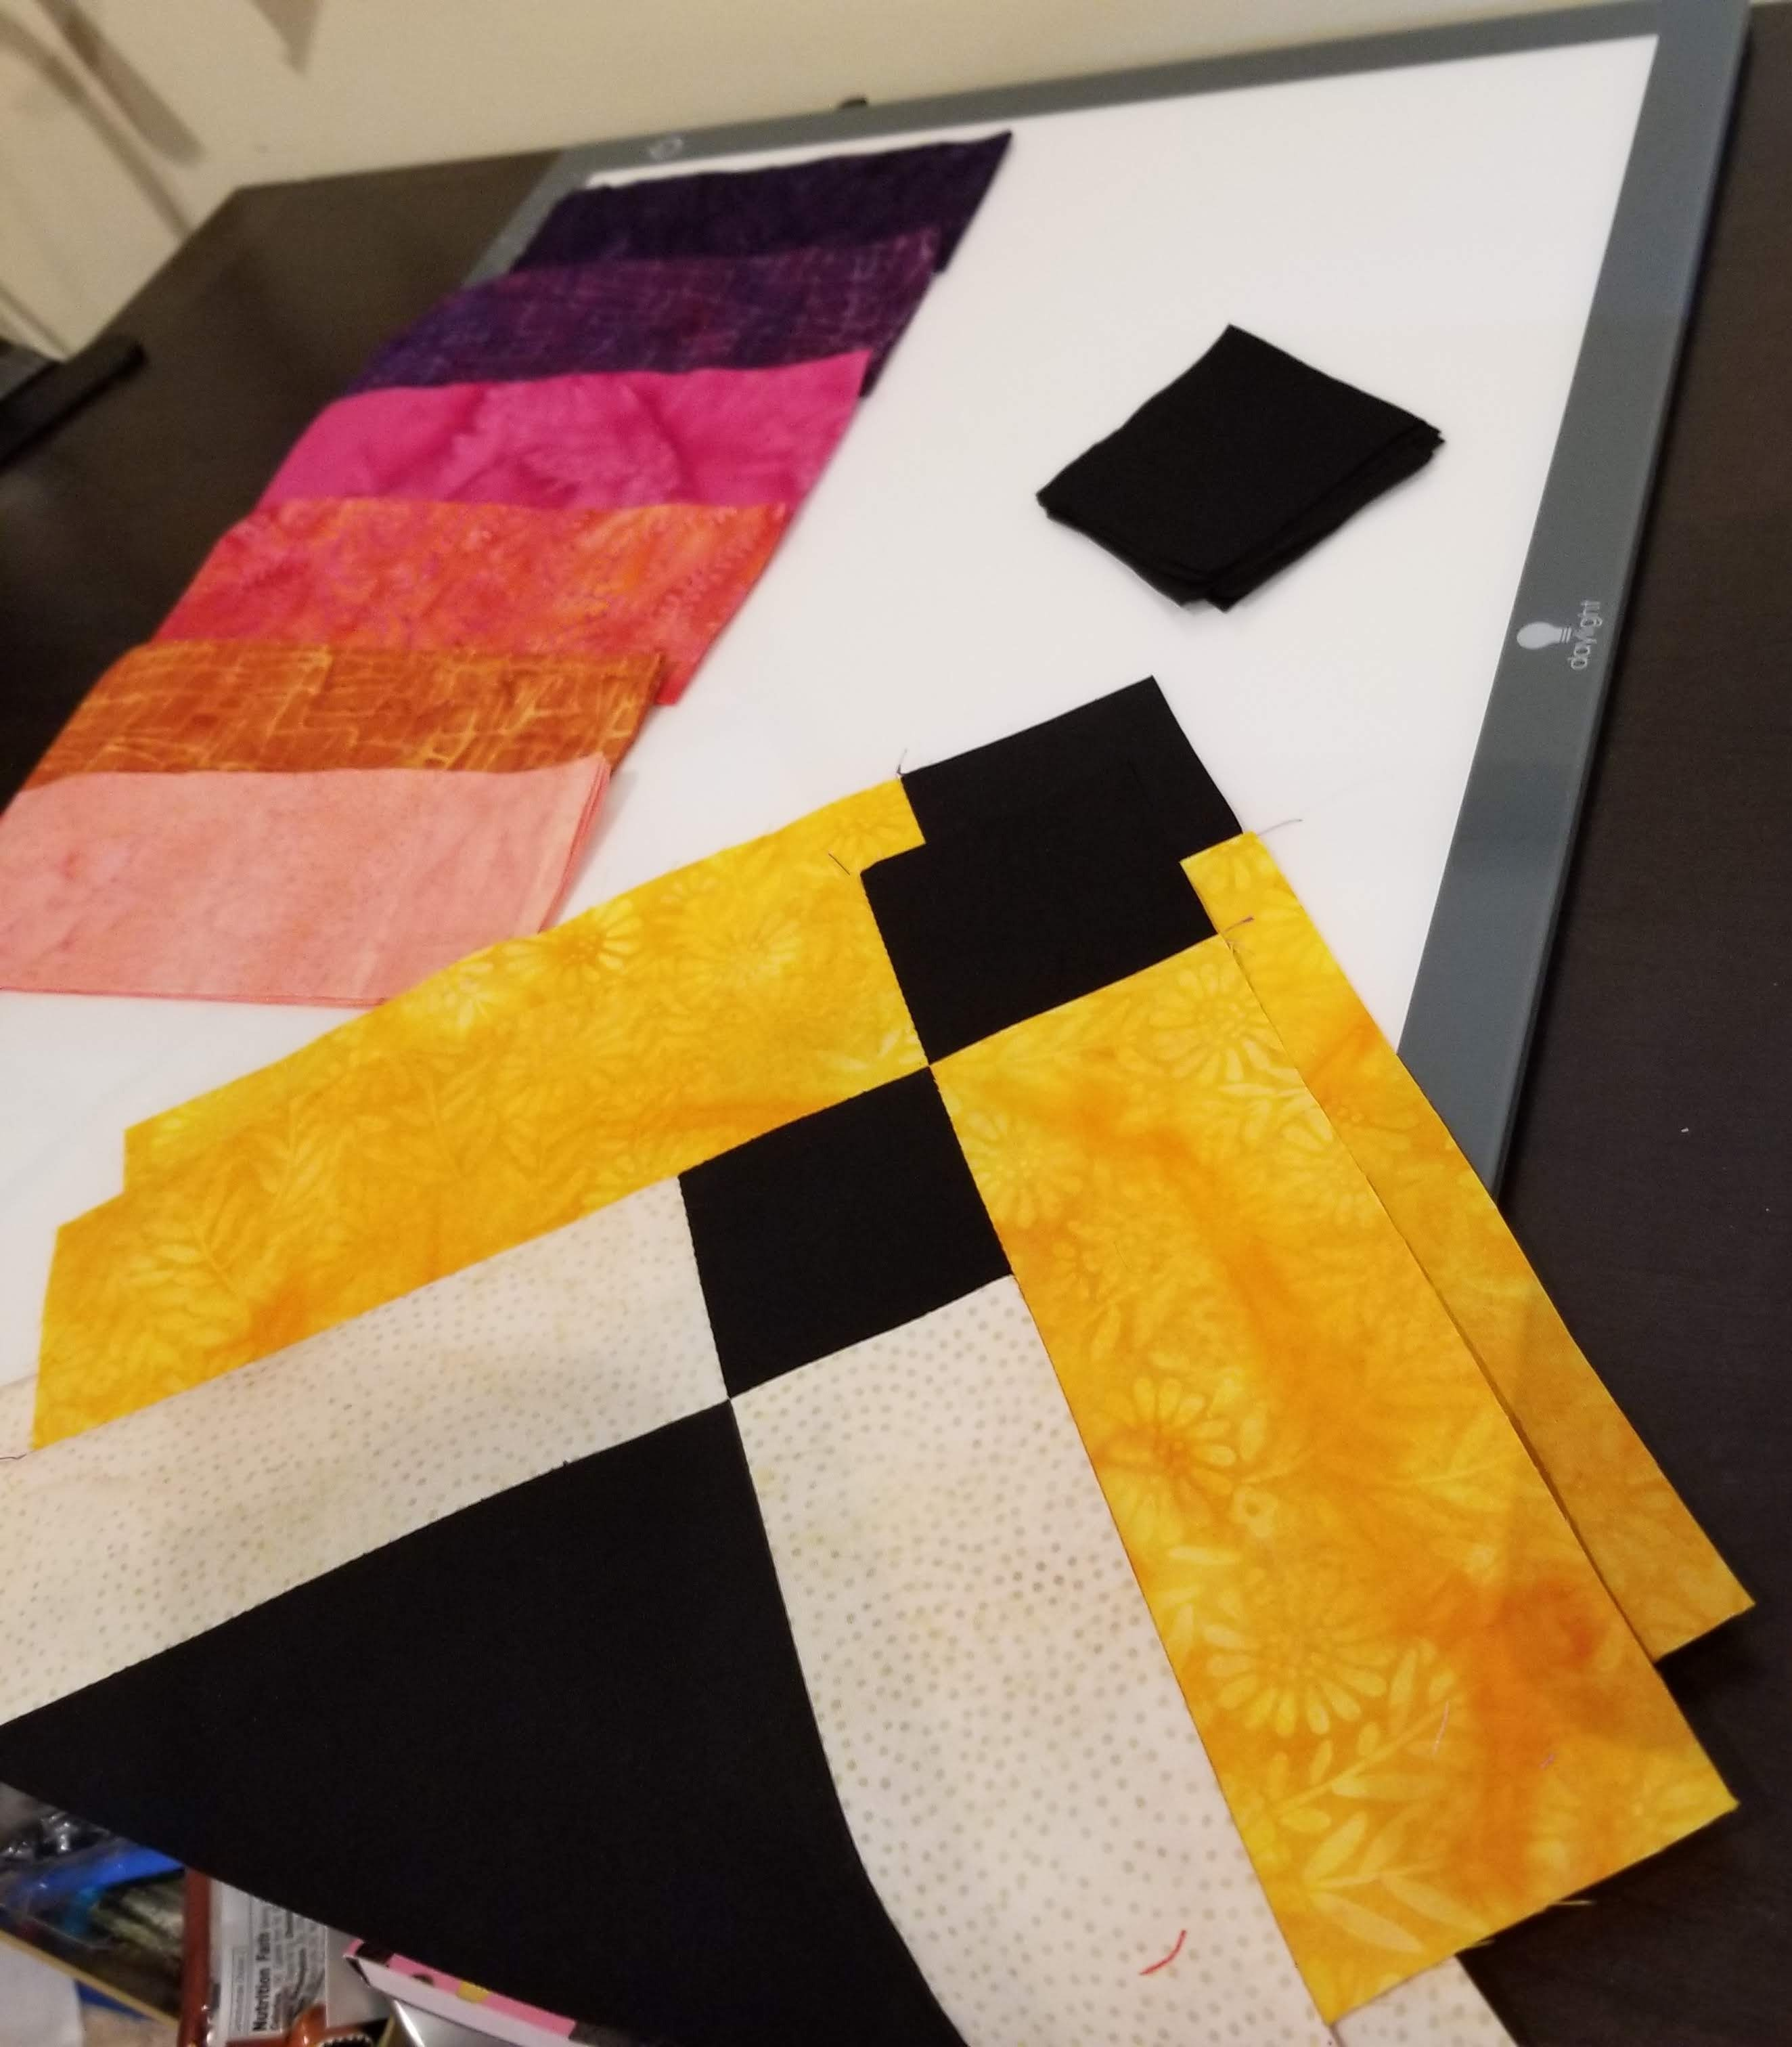 sewn quilt pieces for quilt block